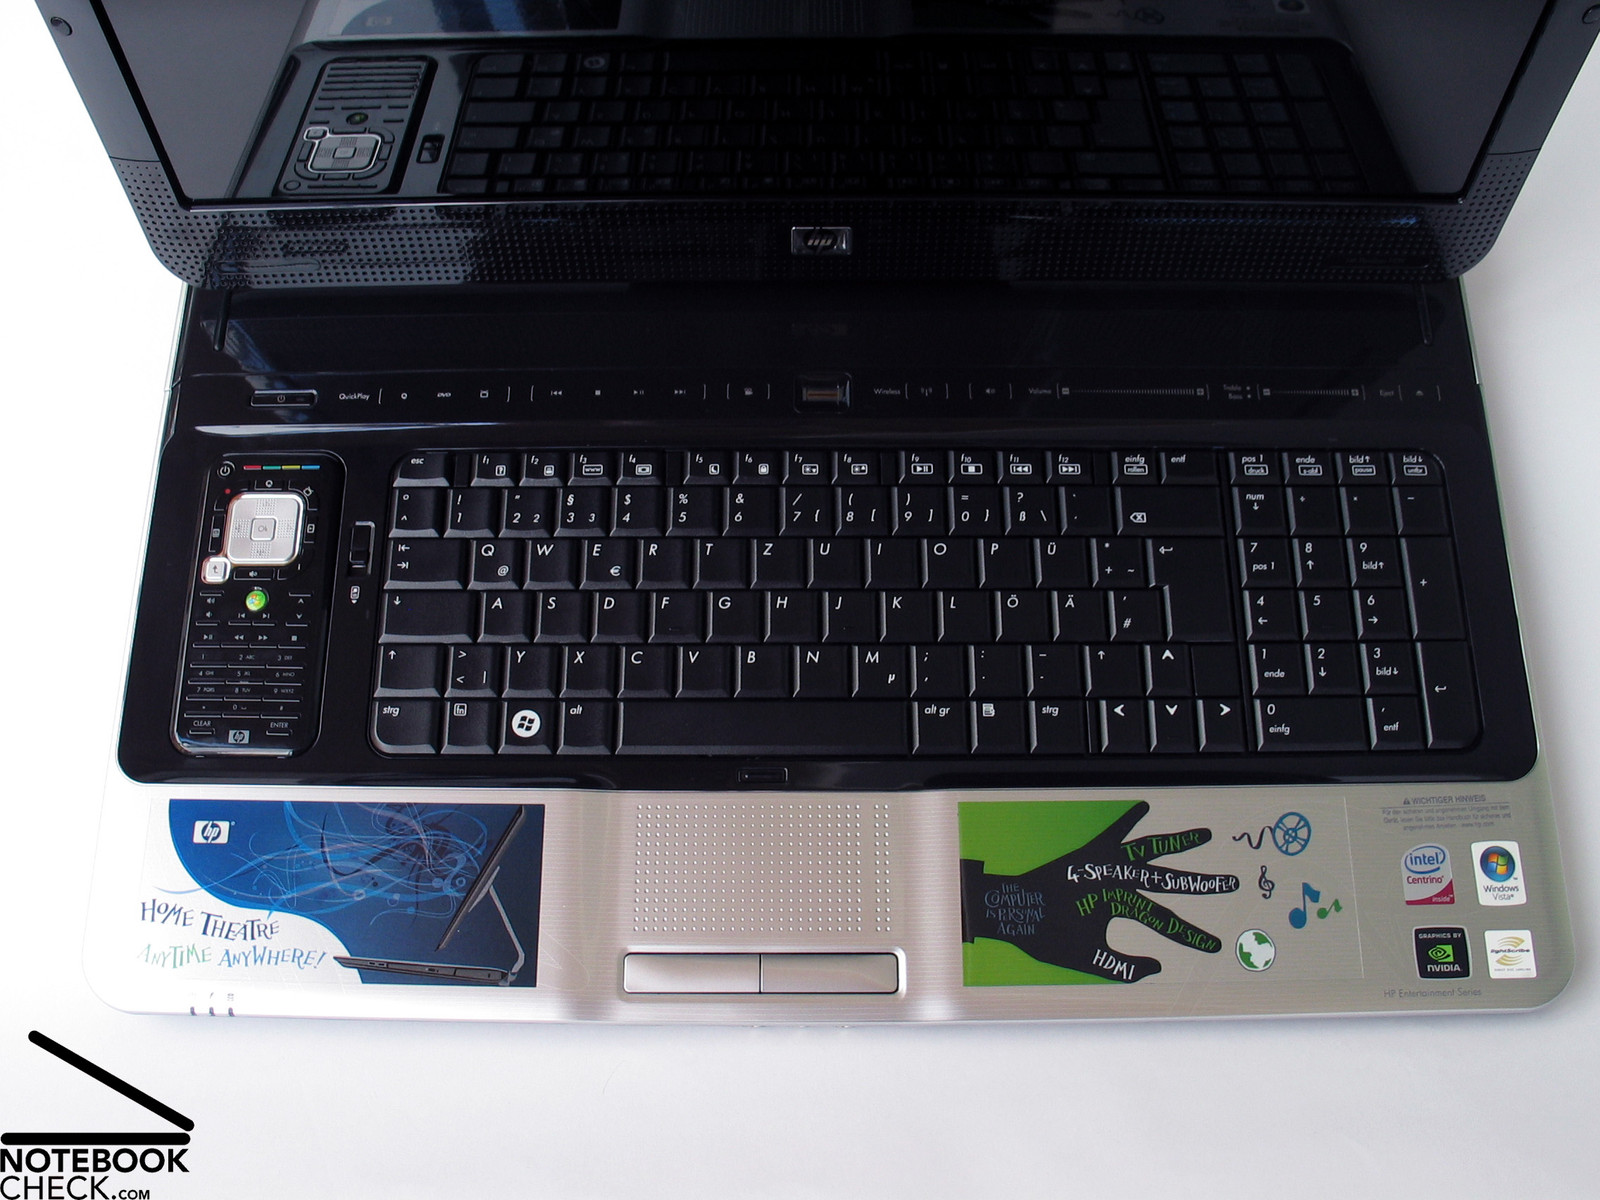 Hp notebook quickdock review - Hp Pavilion Hdx 9320eg Keyboard